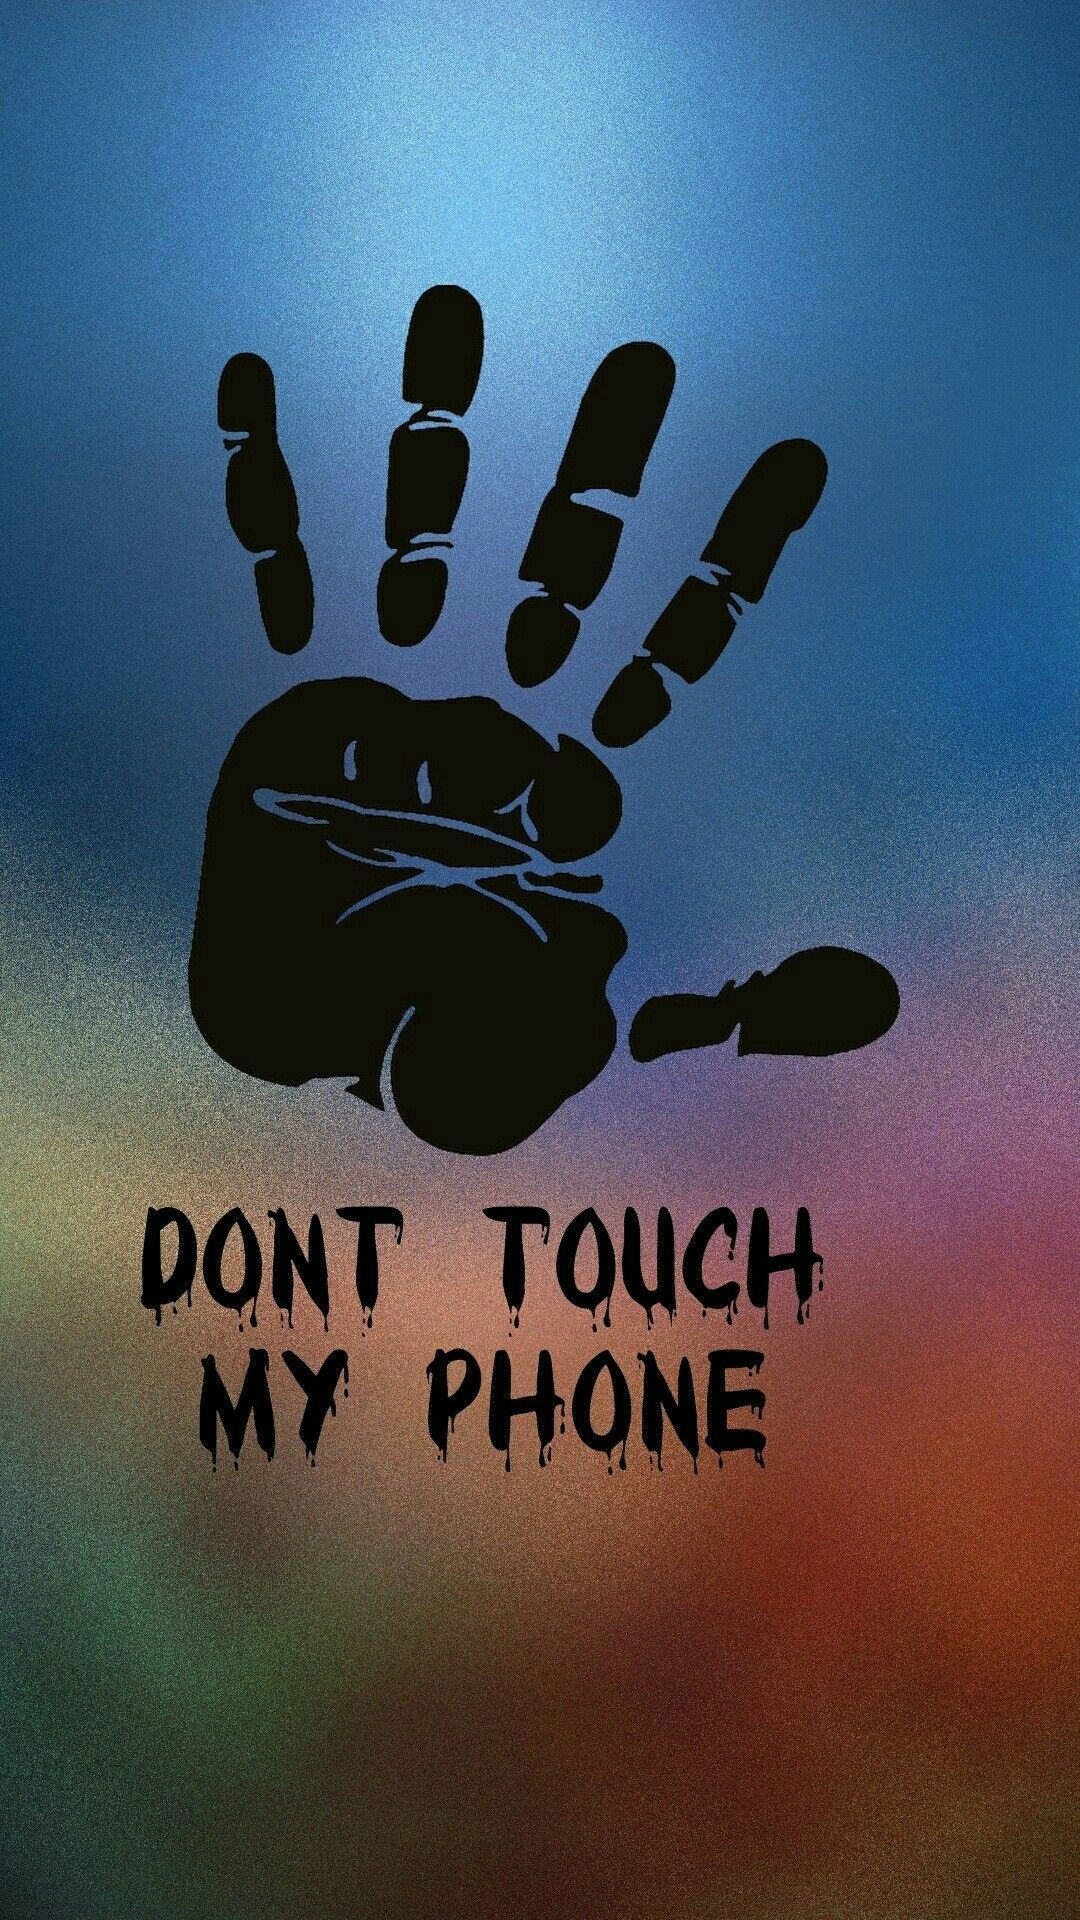 3d Wallpaper 2020 Dont Touch My Phone Doraemon Don't touch my phone virus mobile wallpapers in these difficult times, we need to take all the precautionary measures not to catch the. 3d wallpaper 2020 dont touch my phone